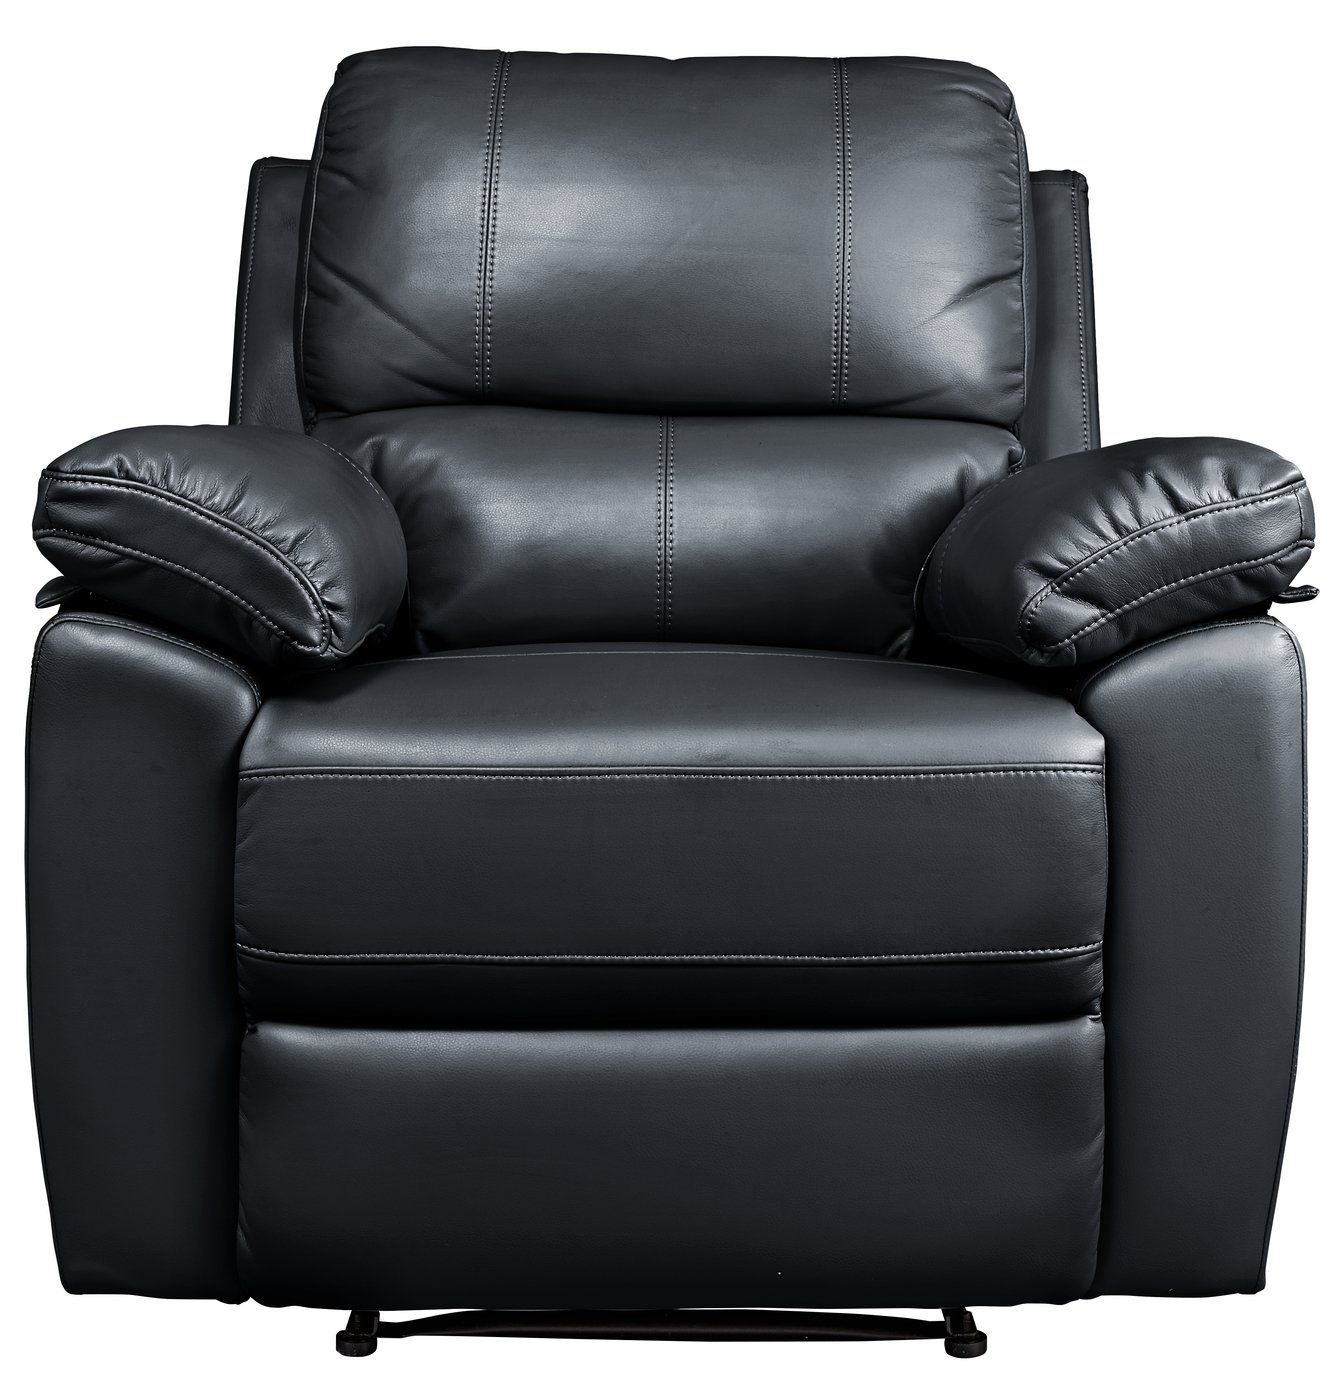 Argos Home Toby Faux Leather Manual Recliner Chair Black In 2020